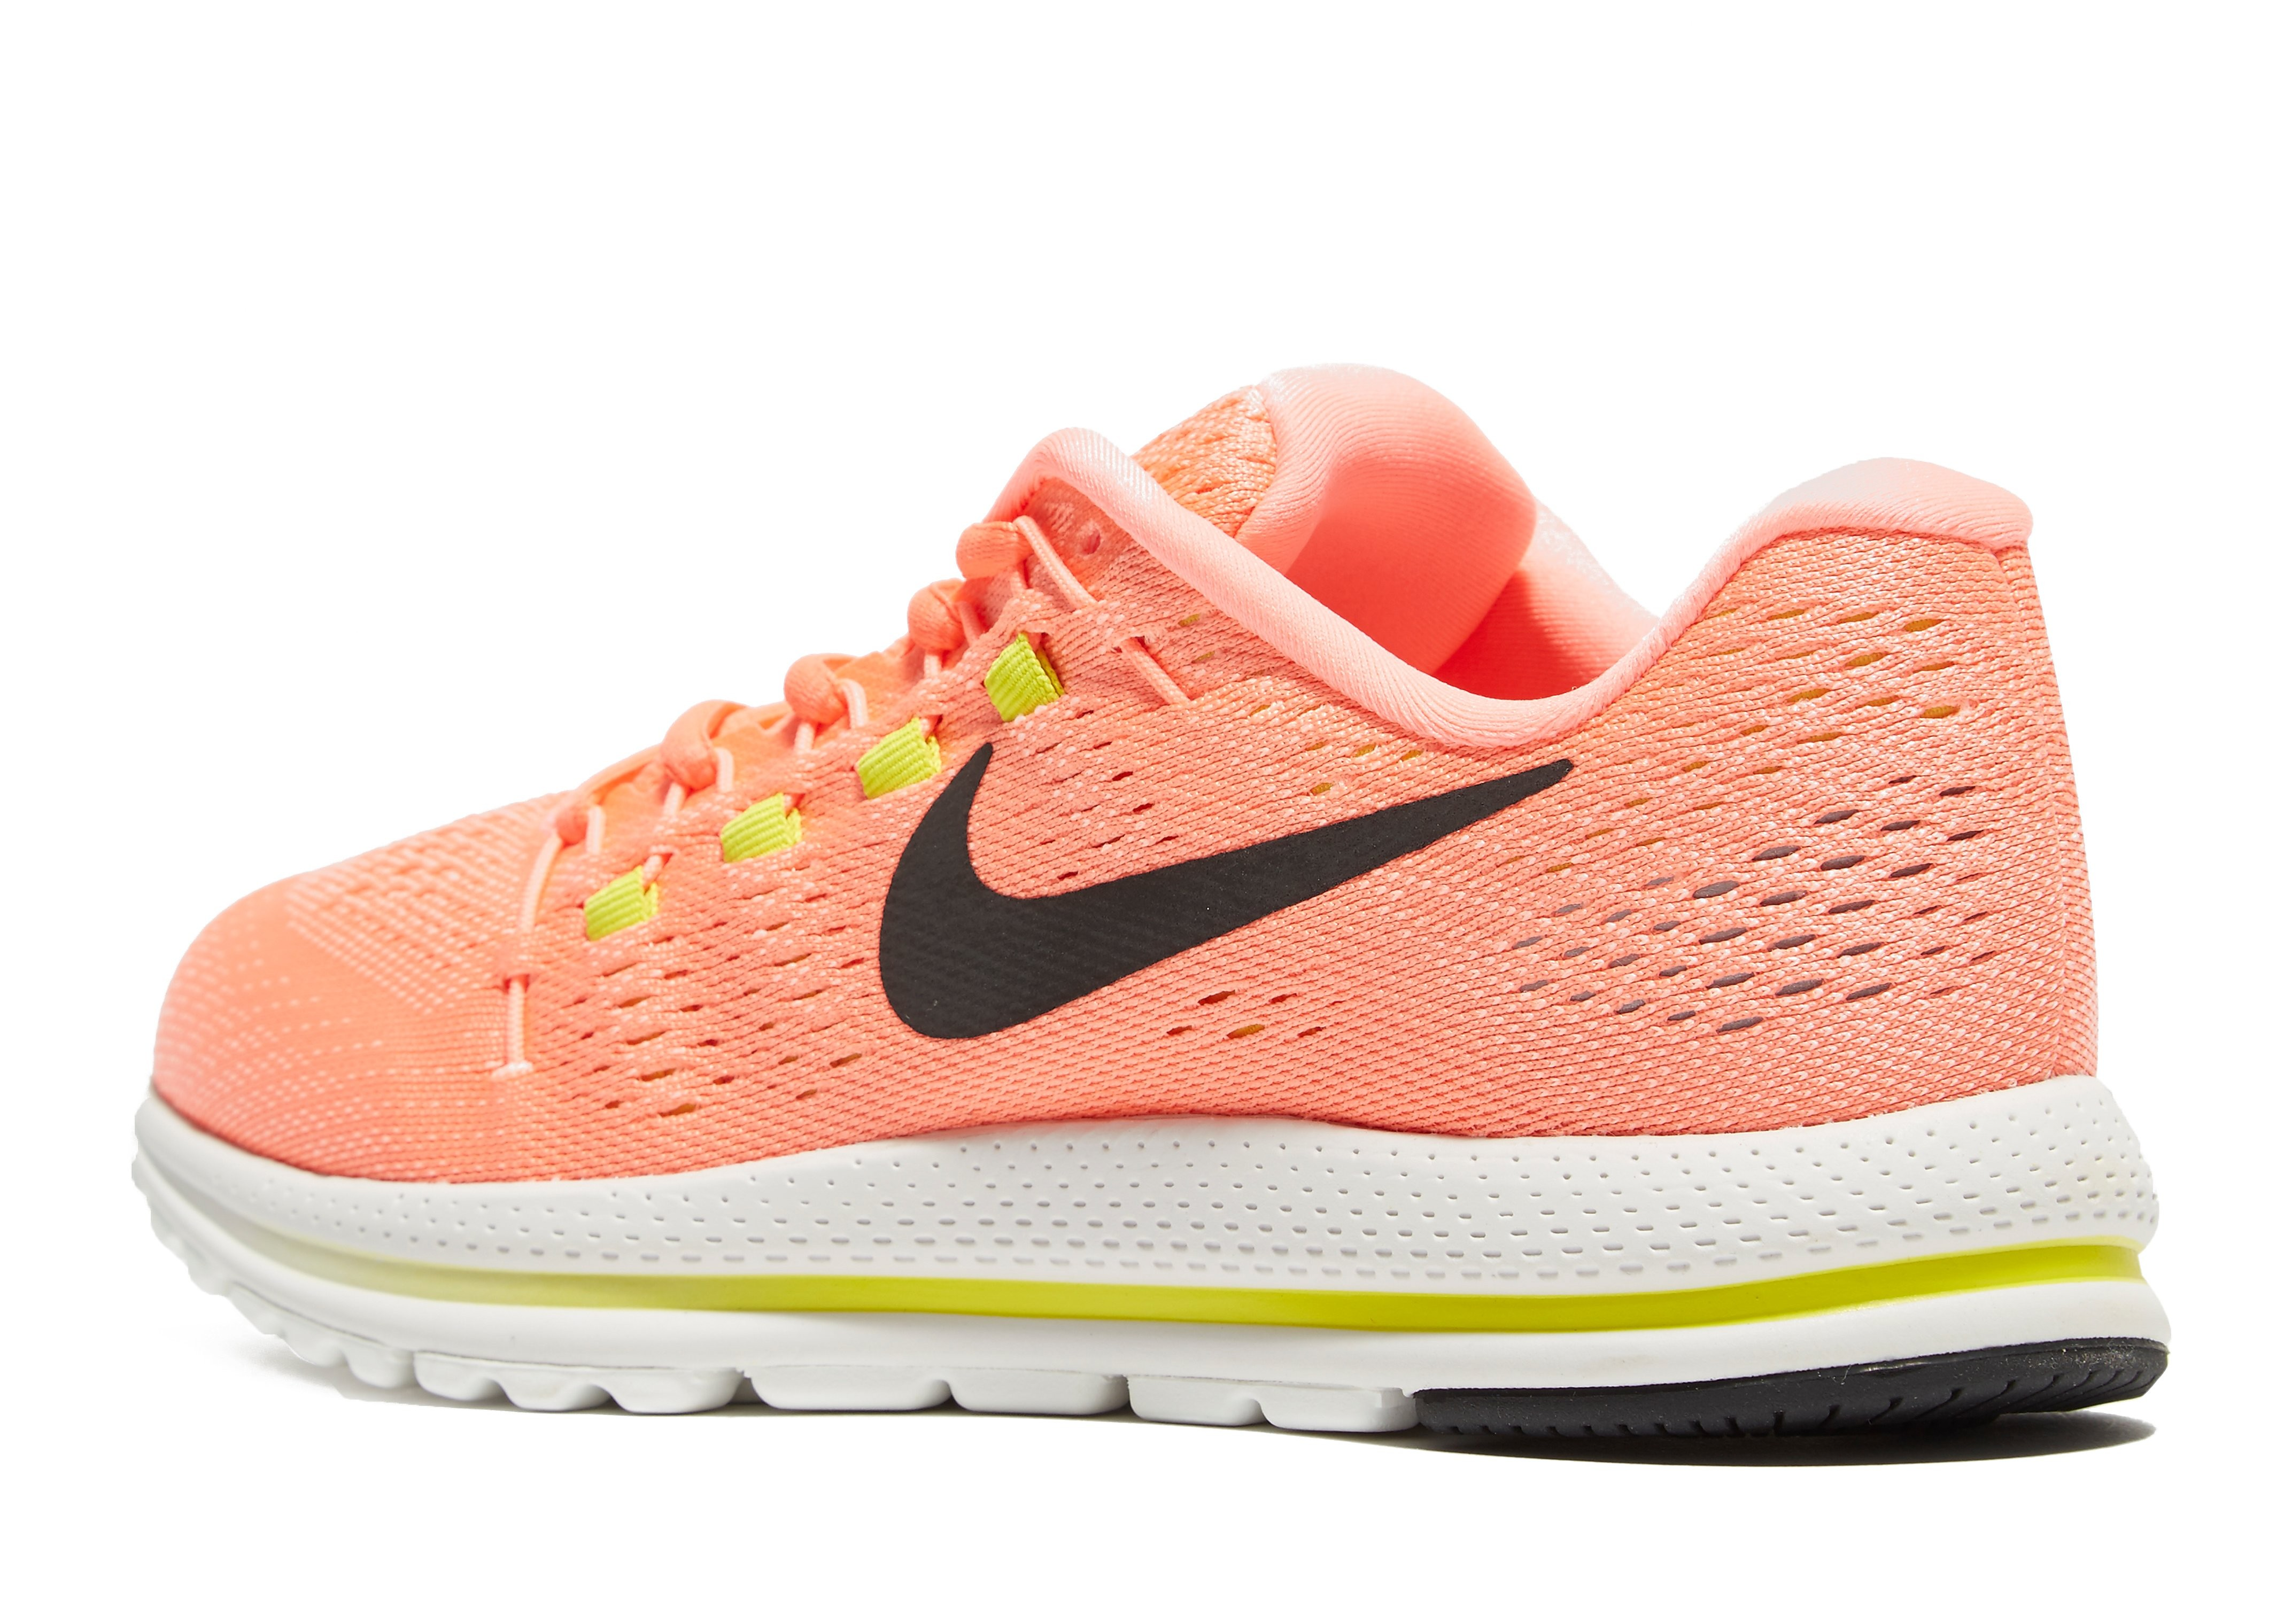 Nike Air Zoom Vomero 12 Women's